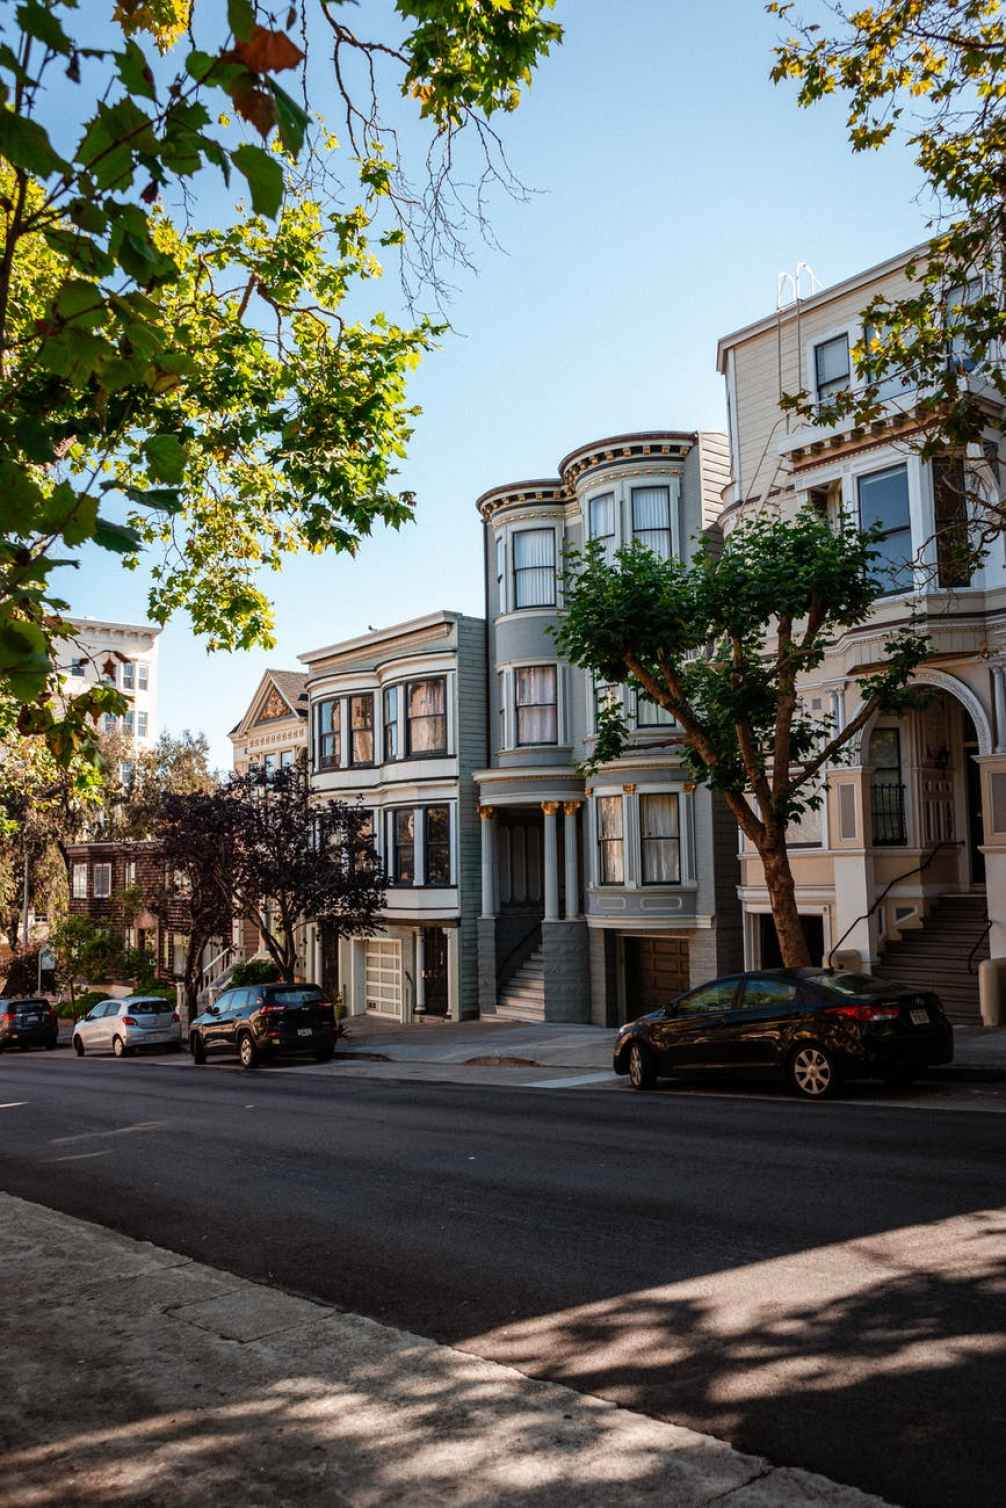 residential district with elegant houses on sunny day